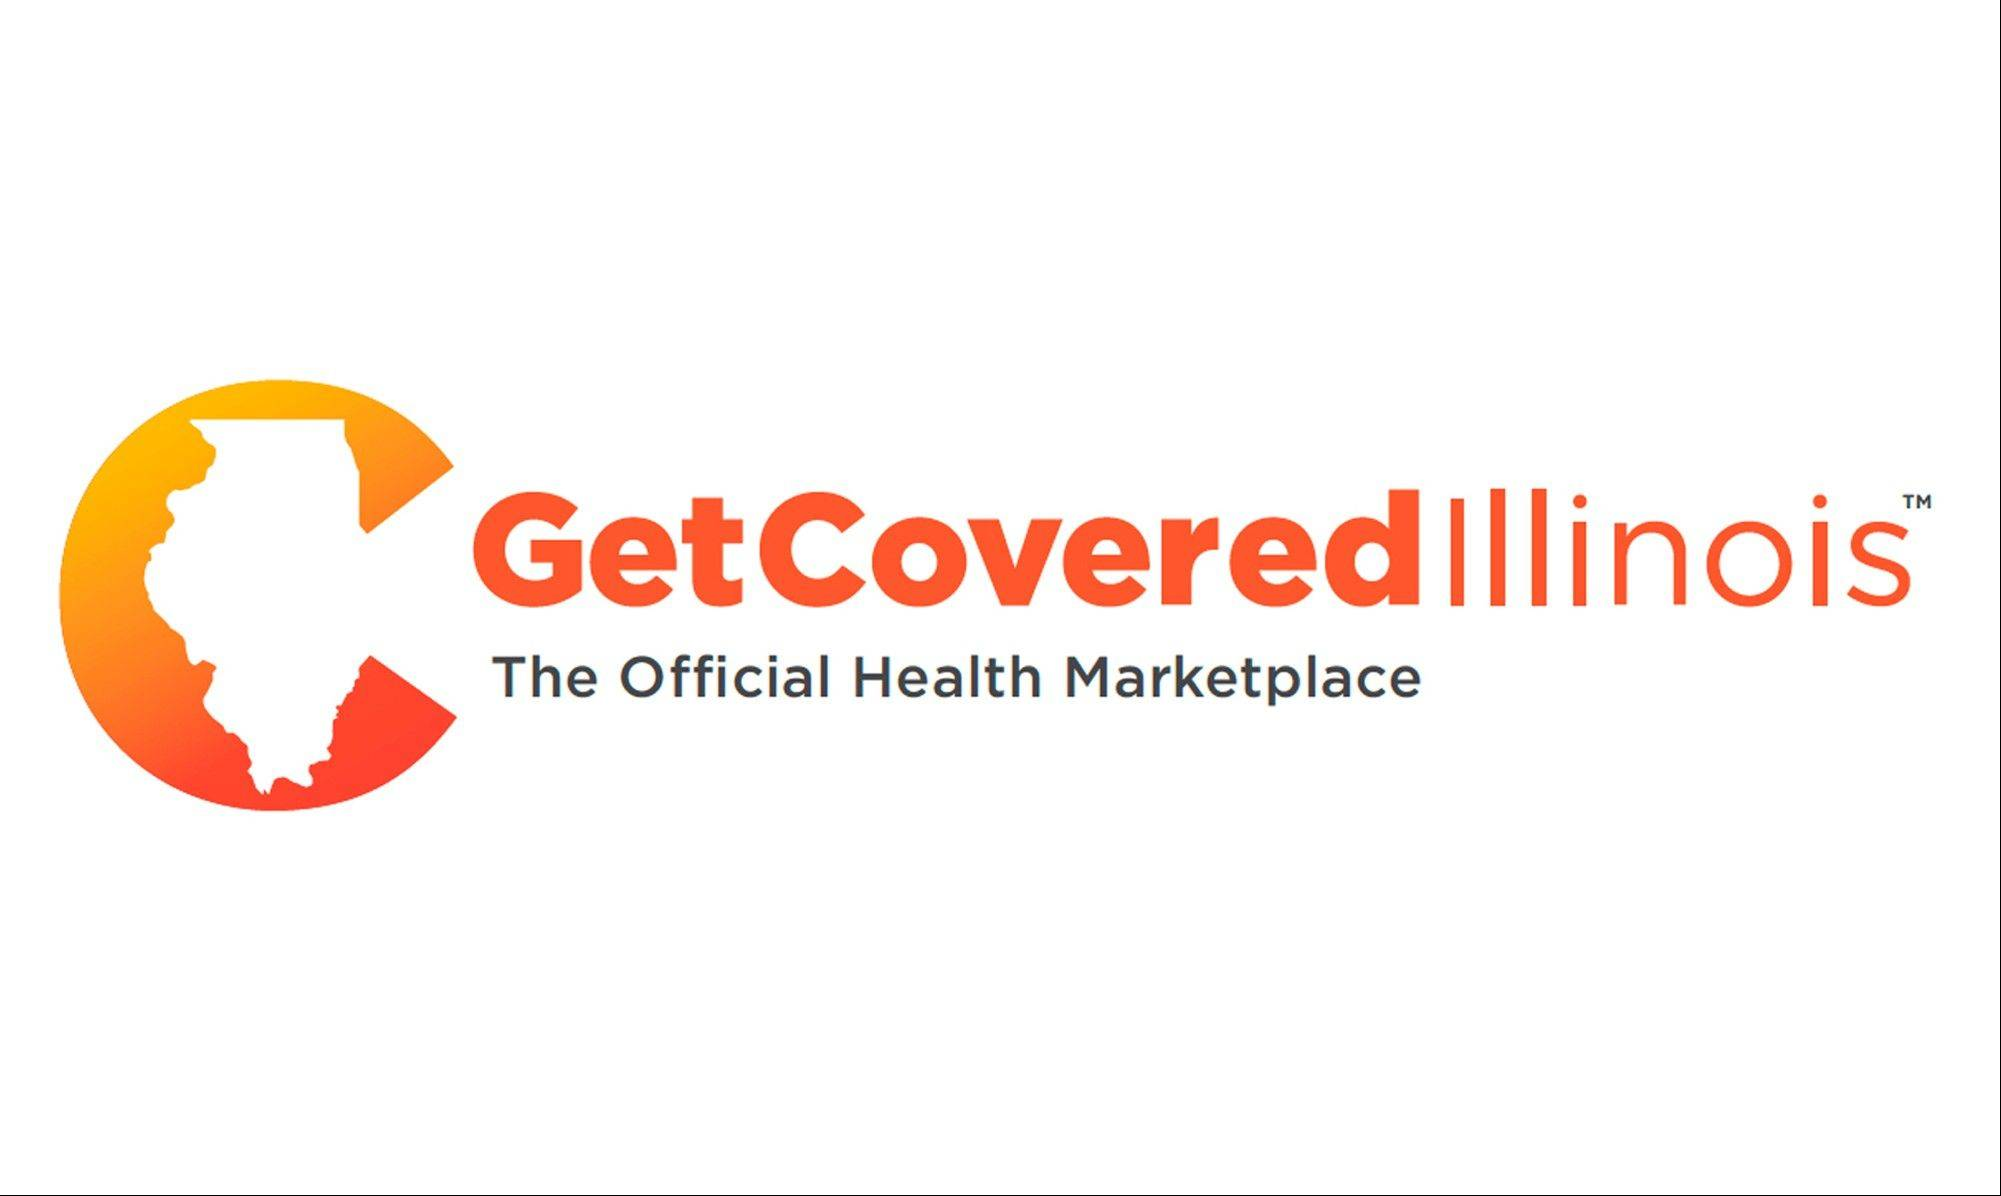 Health marketplace to be called 'Get Covered Illinois'